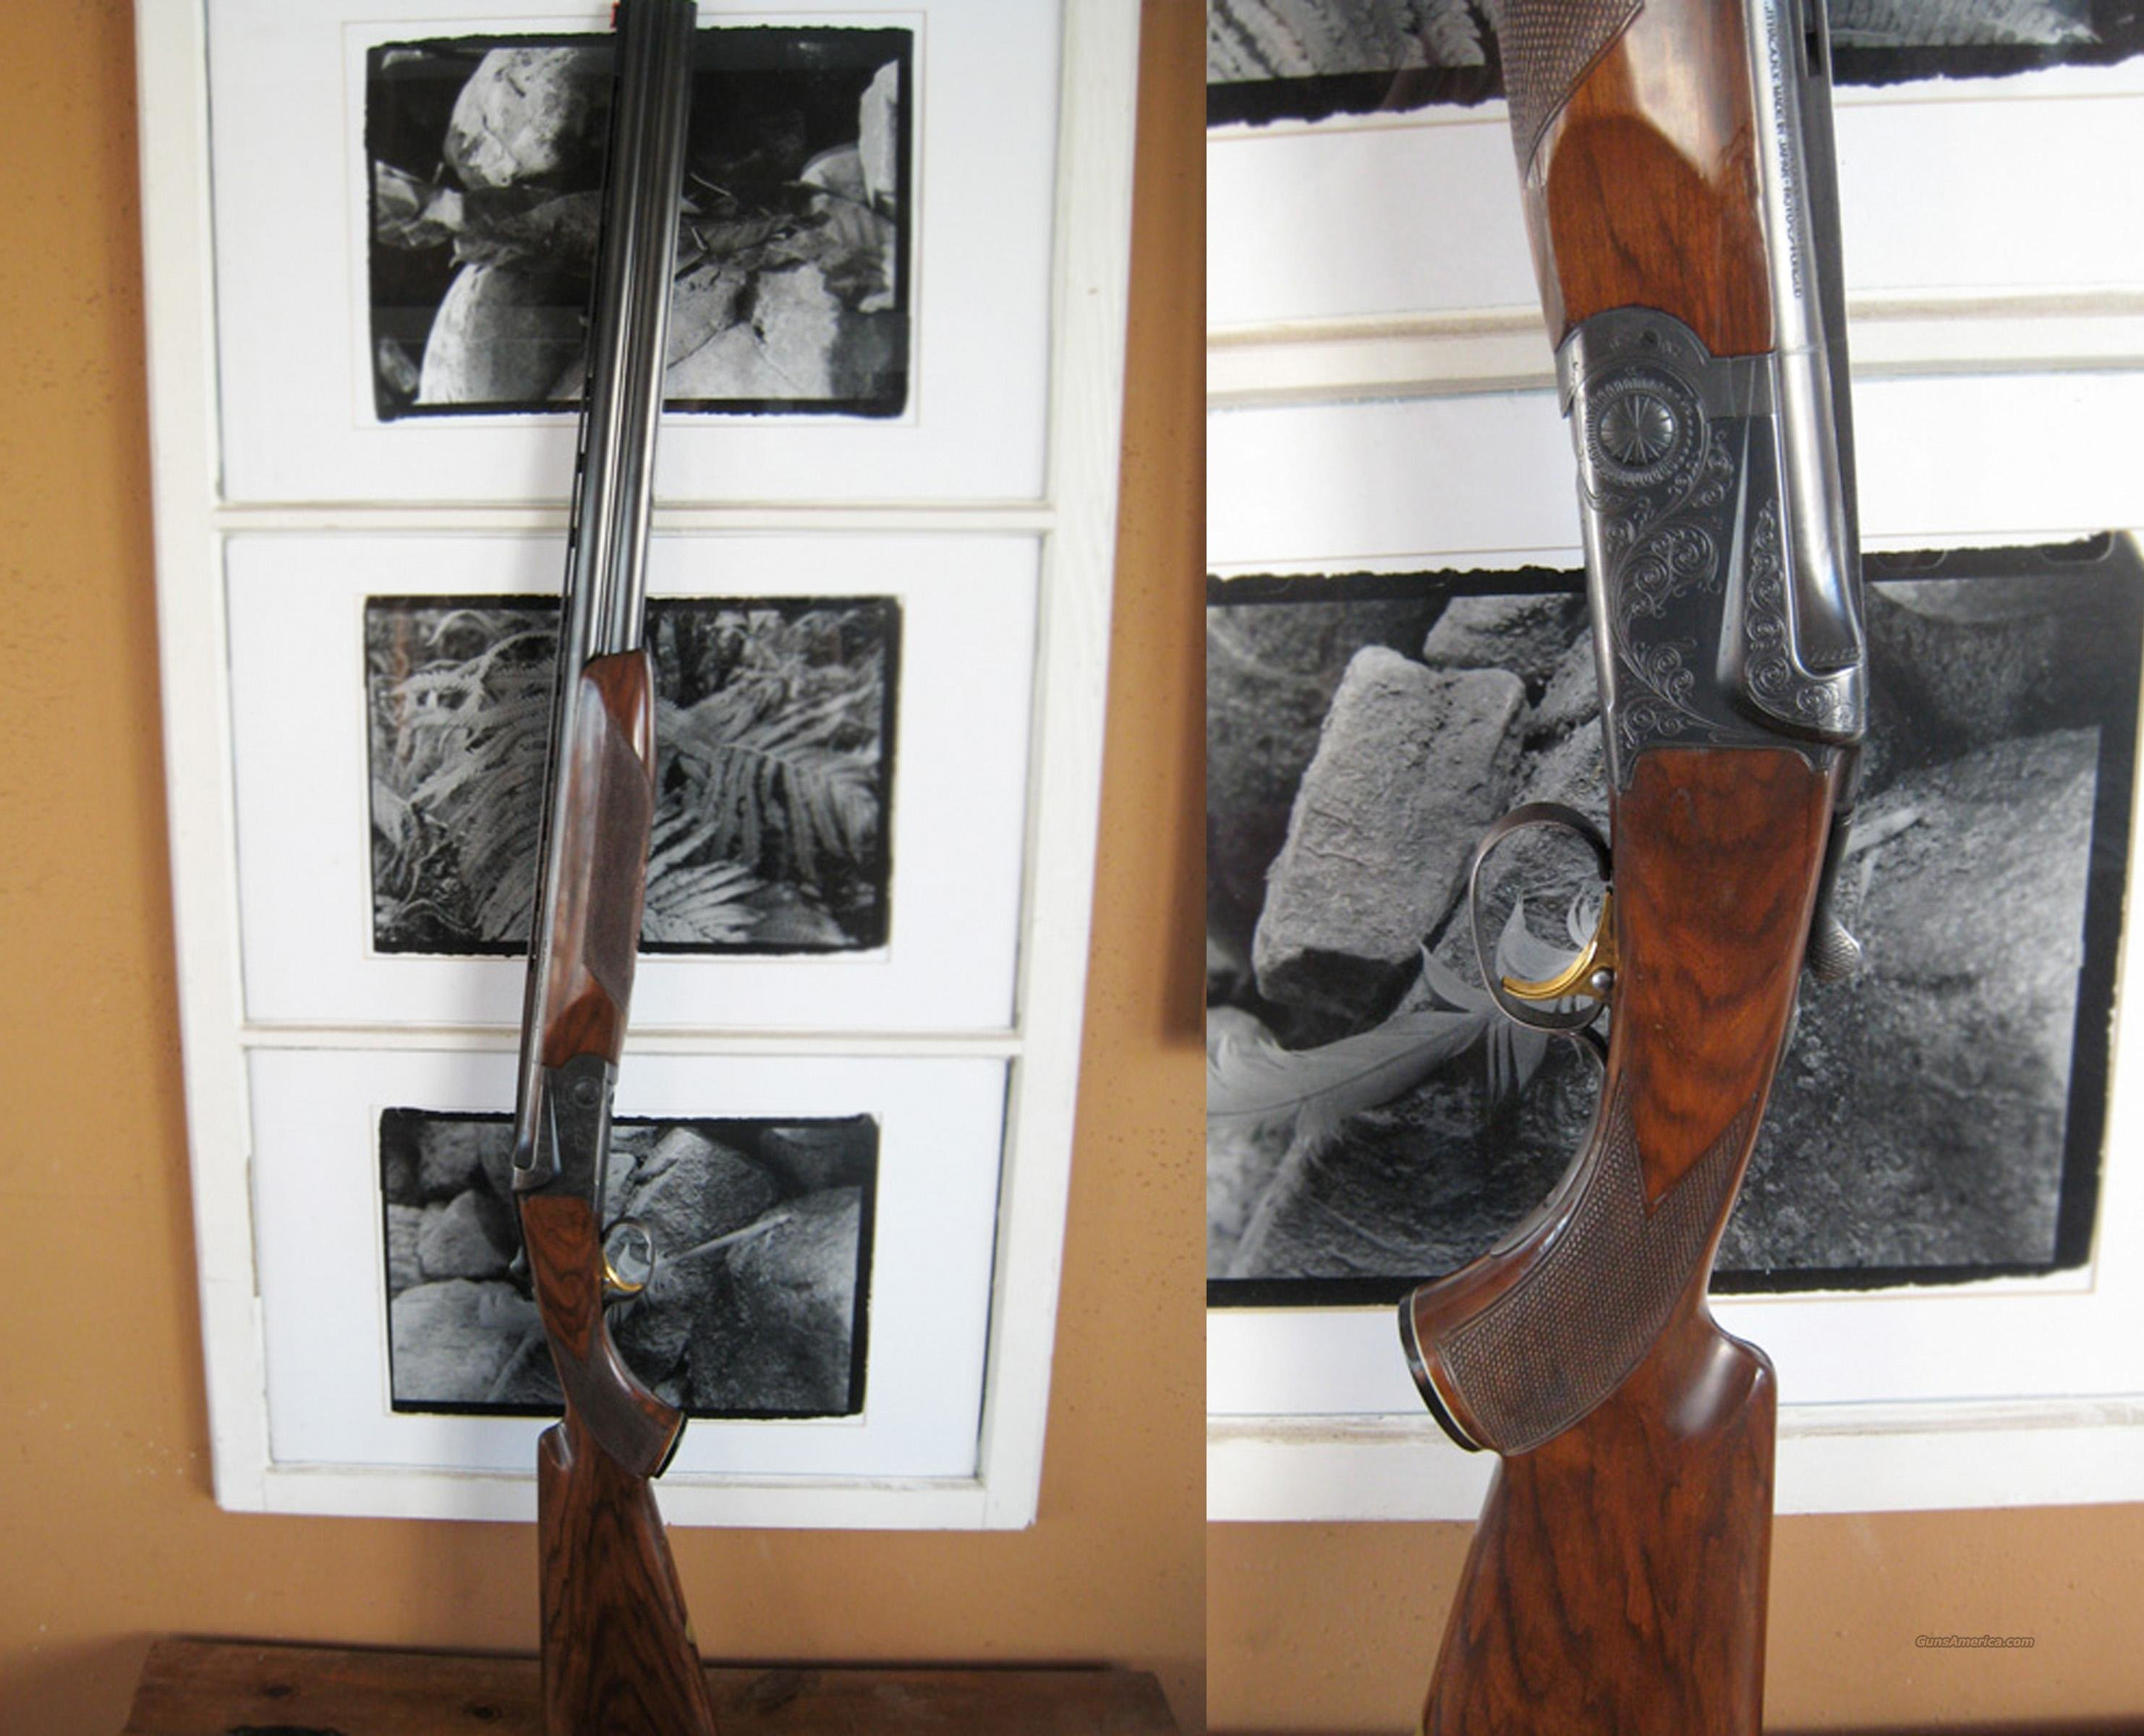 MODEL 600 E ITHACA SKB OVER AND UNDER SHOTGUN  Guns > Shotguns > SKB Shotguns > Hunting